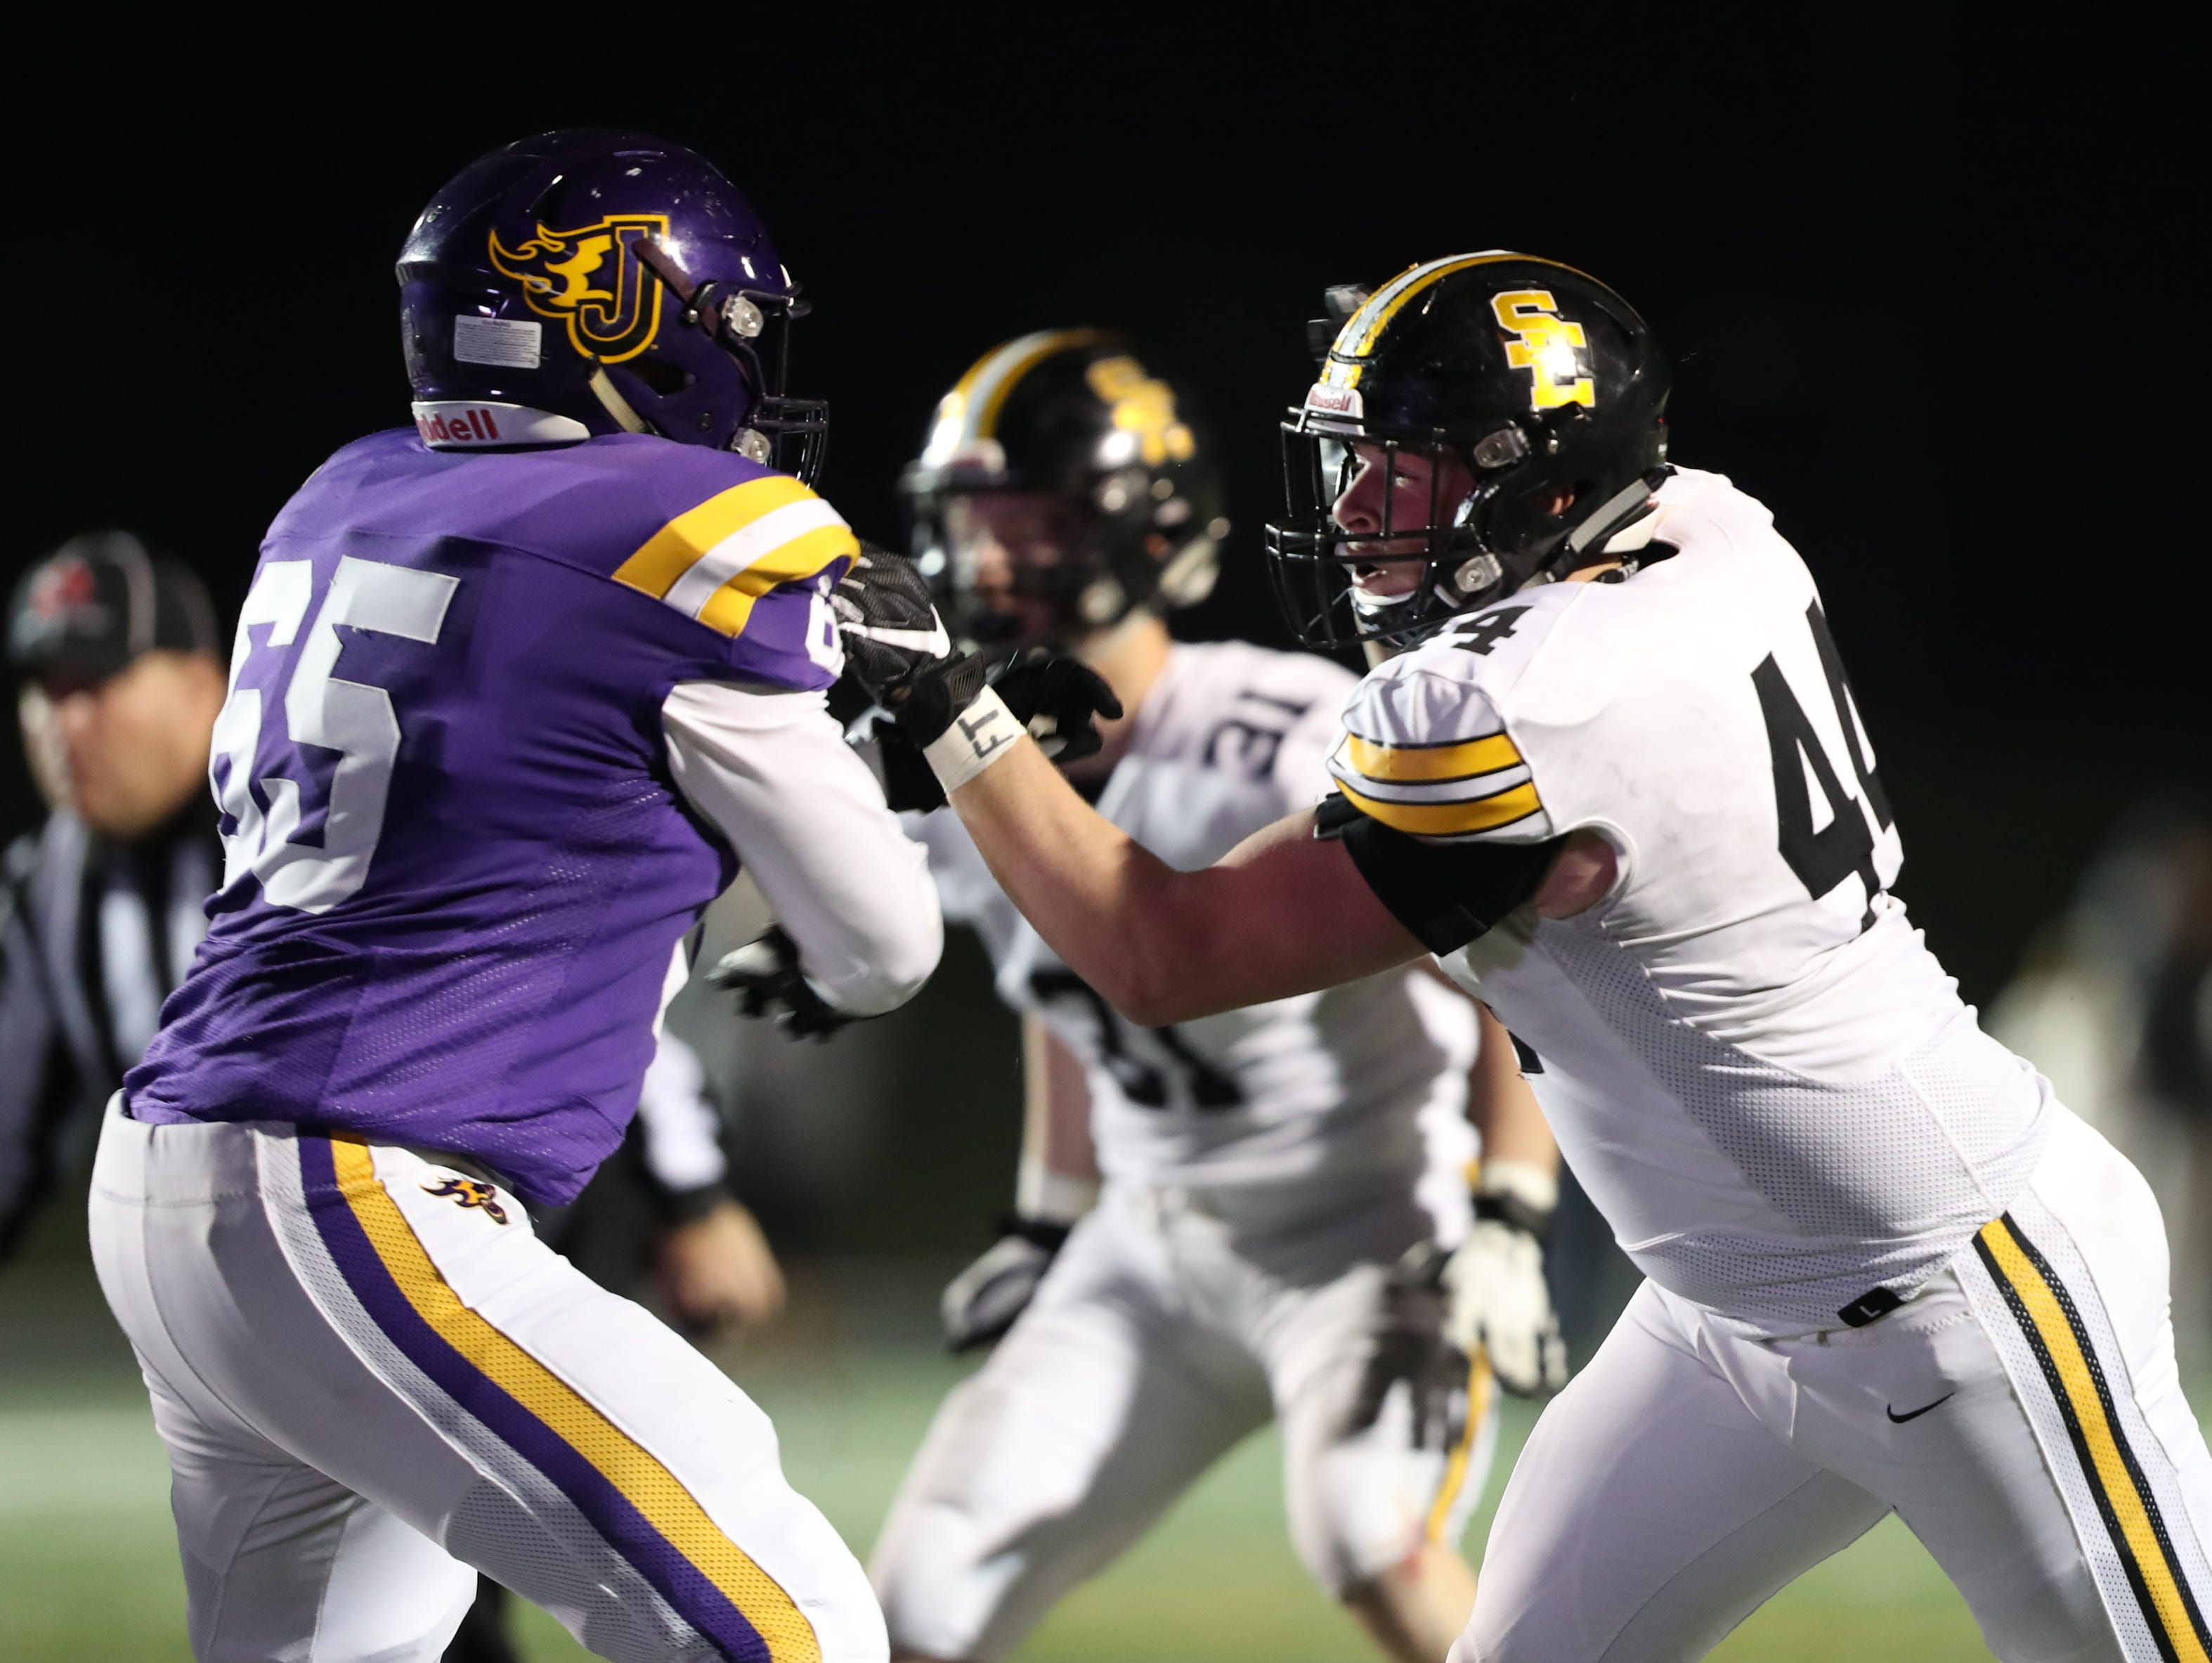 Nov 2, 2018; Johnston, IA, USA; Southeast Polk Rams Tanner VanElsen (44) battles Johnston Dragons Tyler Slagle (65) at Johnston Stadium. The Rams beat the Dragons 21-7.